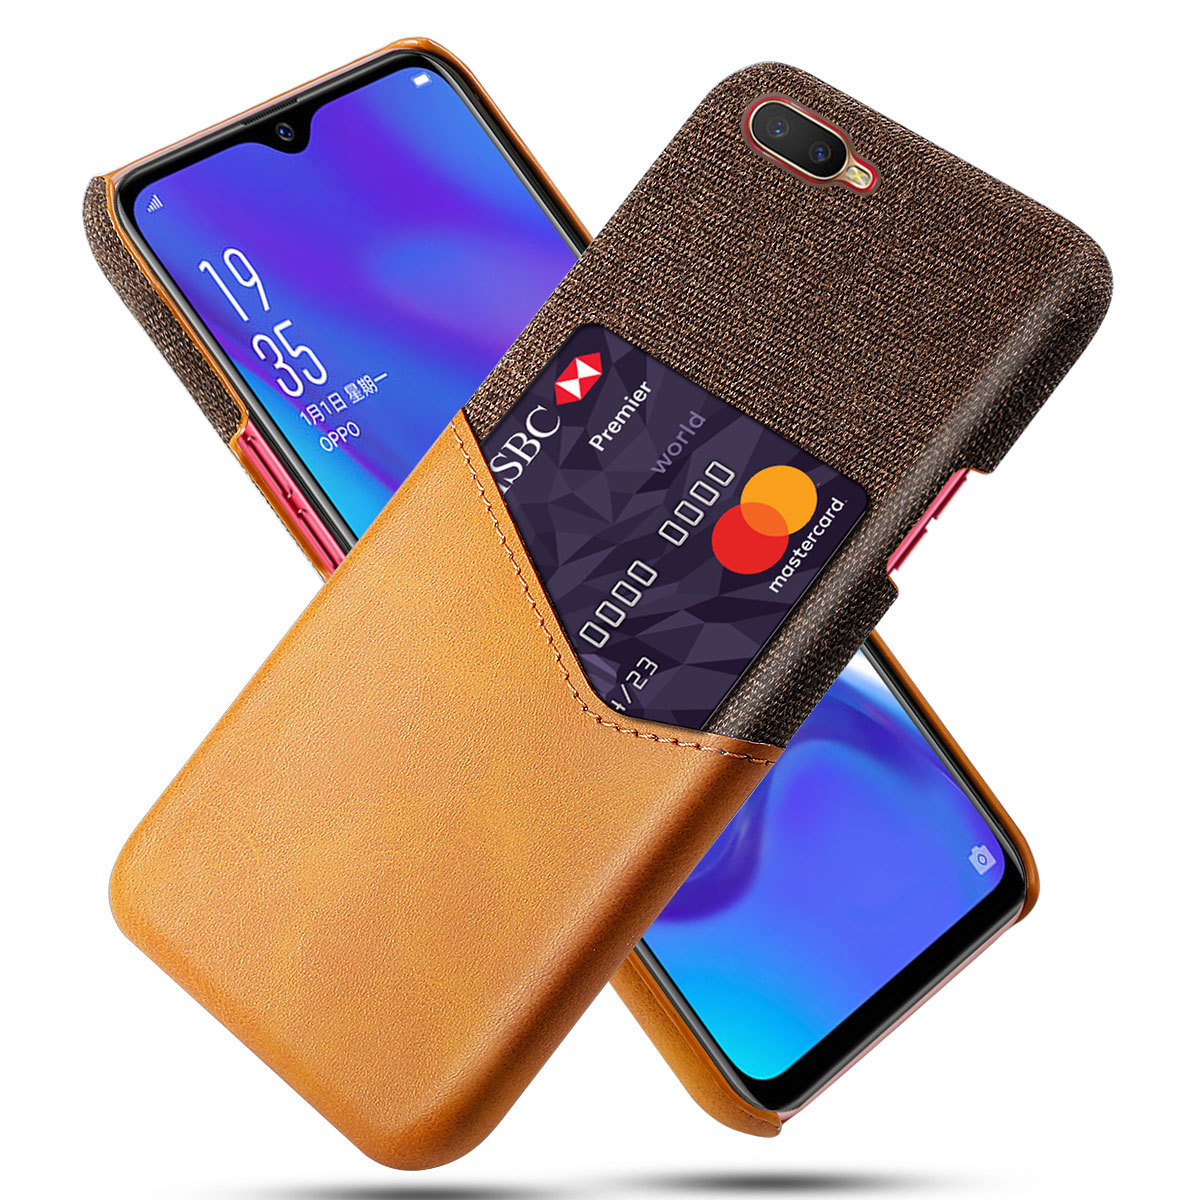 DCK Leather Hard Cloth Card Phone <font><b>Cases</b></font> for <font><b>OPPO</b></font> K1 AX5S AX7 Pro AX7Pro <font><b>Find</b></font> X X2 Neo <font><b>7</b></font> Slim Hybrid Hard Platic Phone Cover image